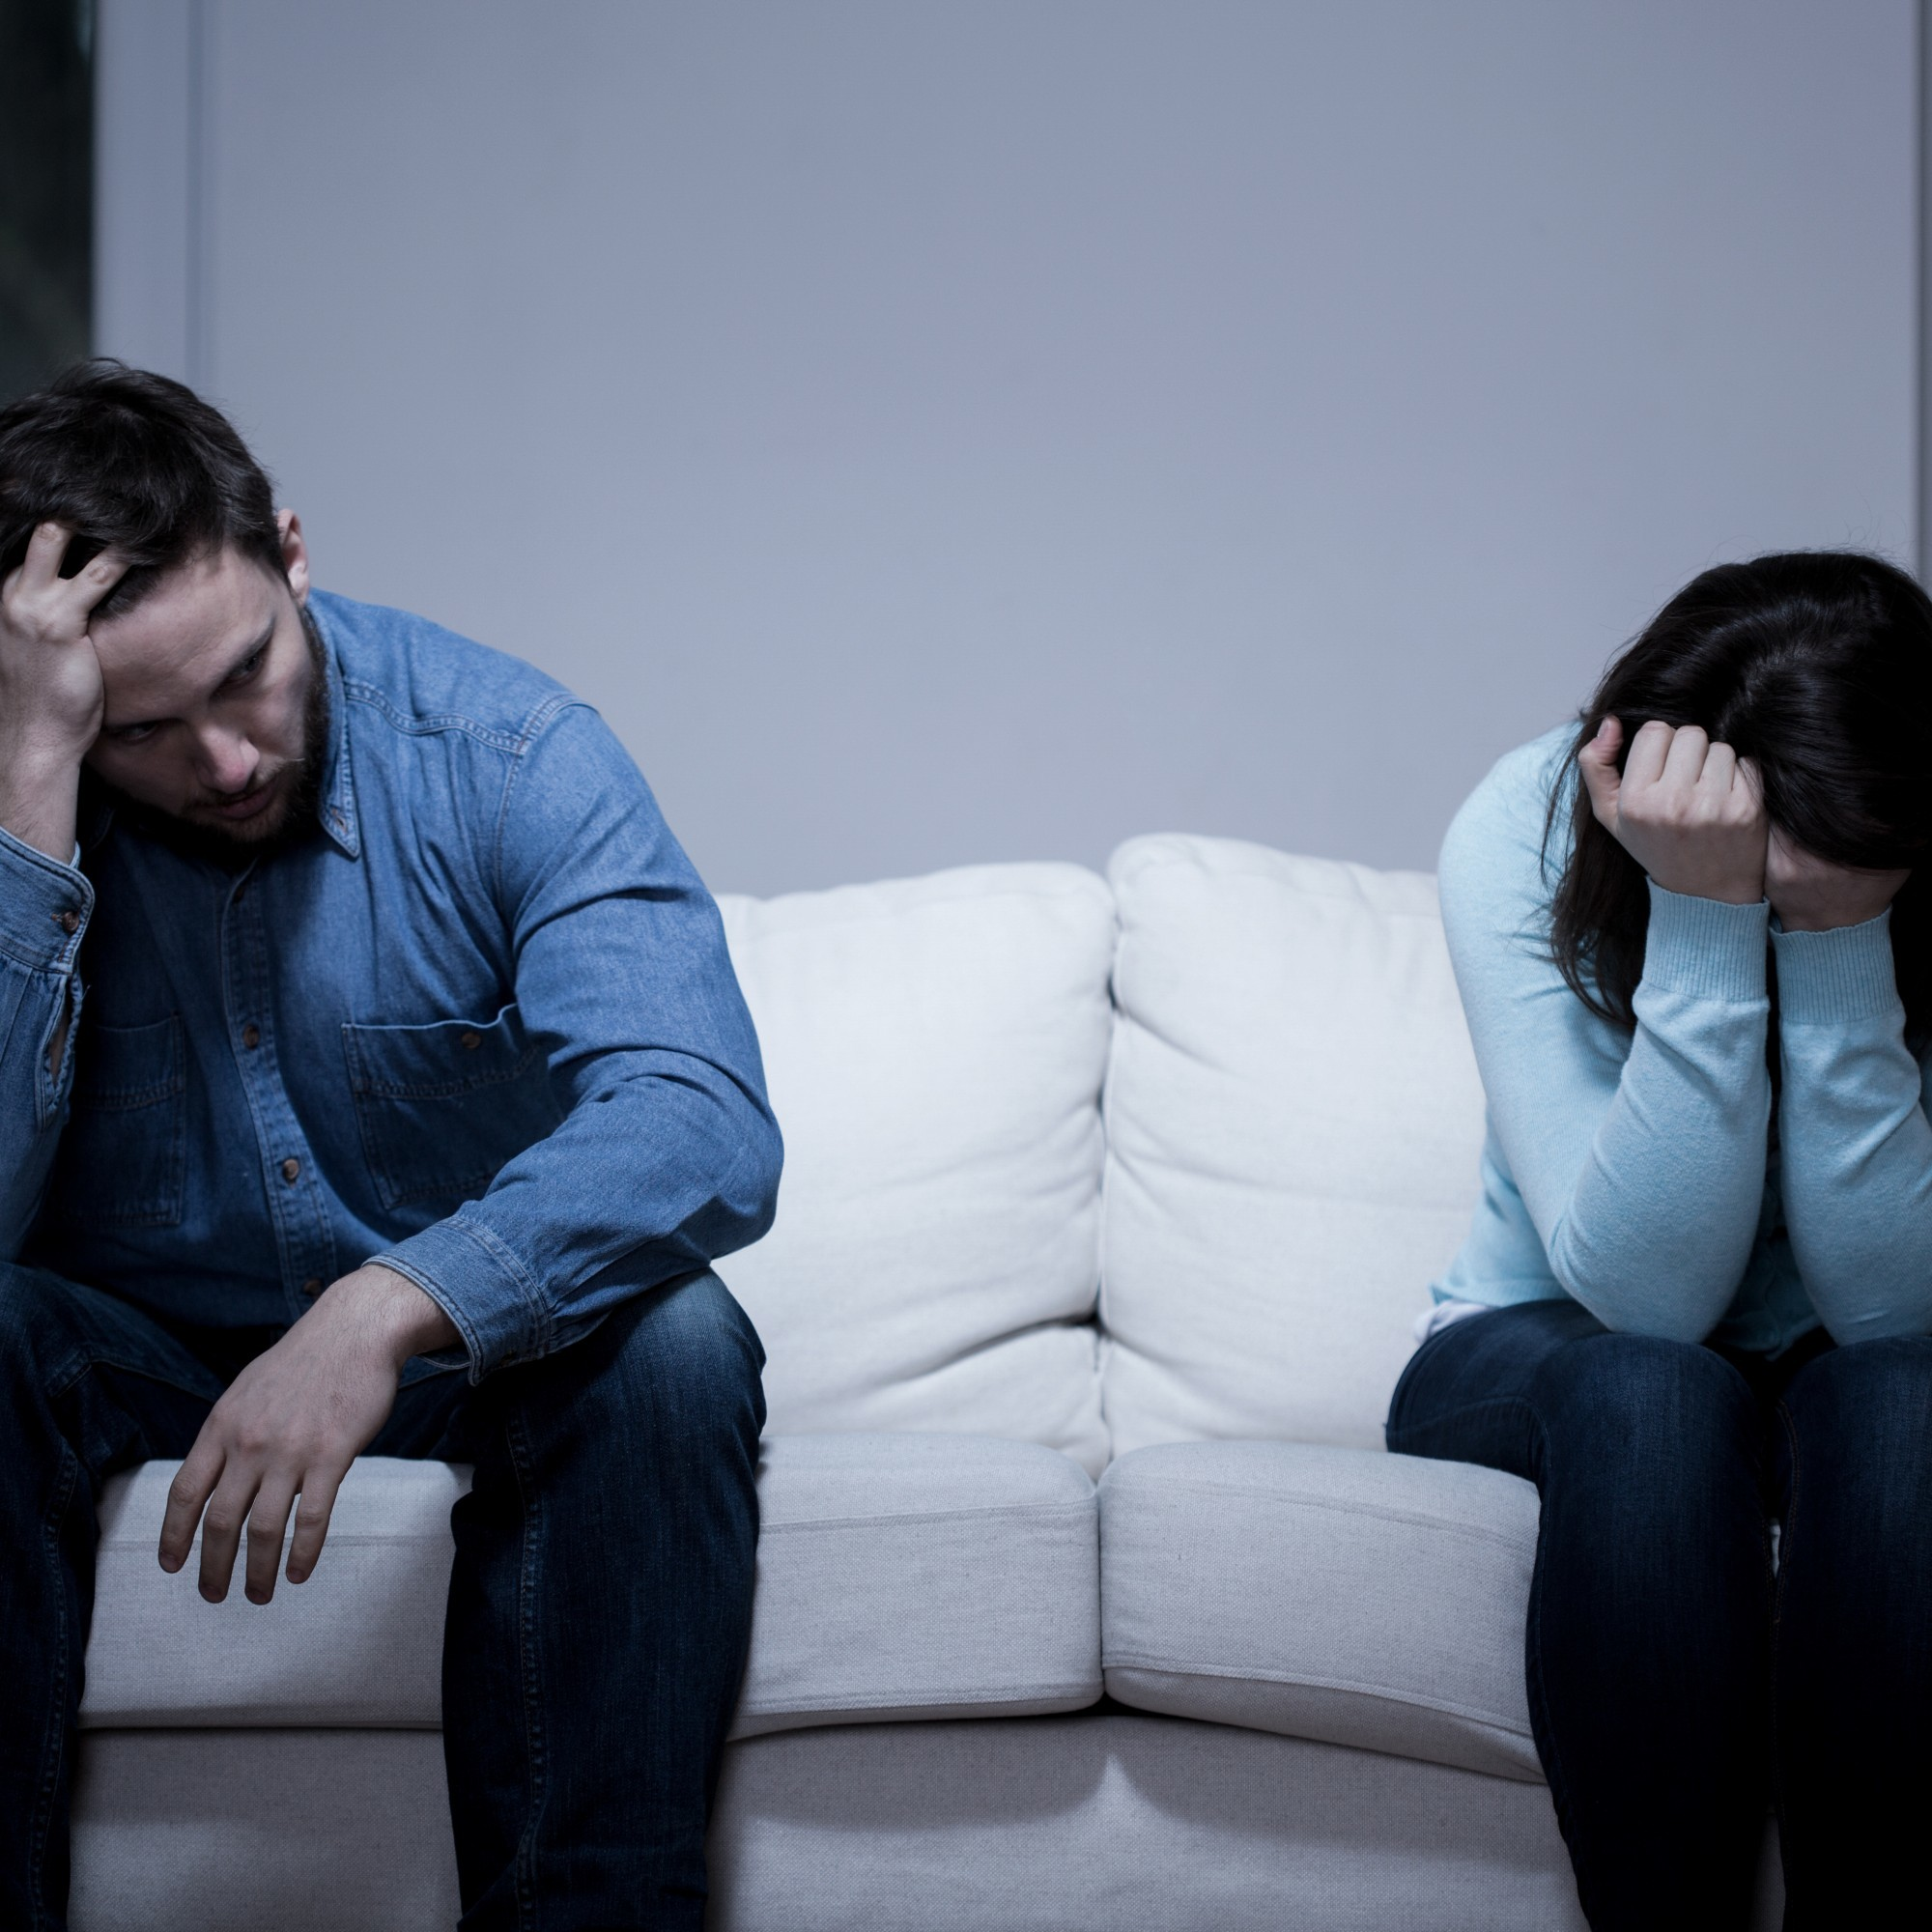 Marriages are becoming the hidden victims of home repossession